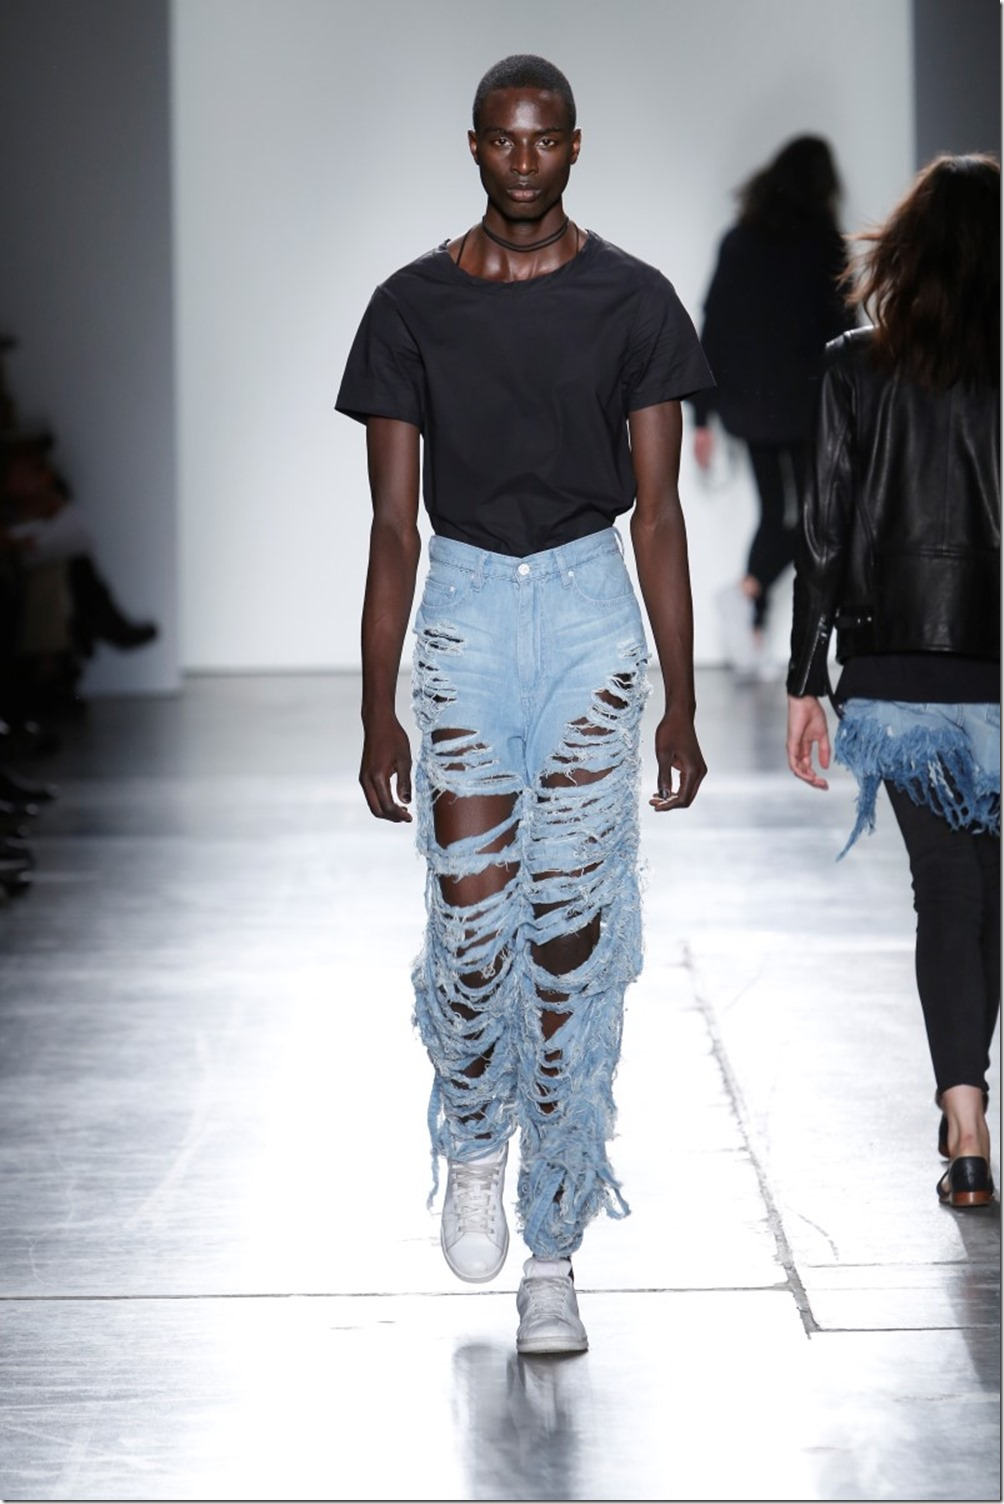 NY Fashion Week | Denim Looks – II denimsandjeans.com